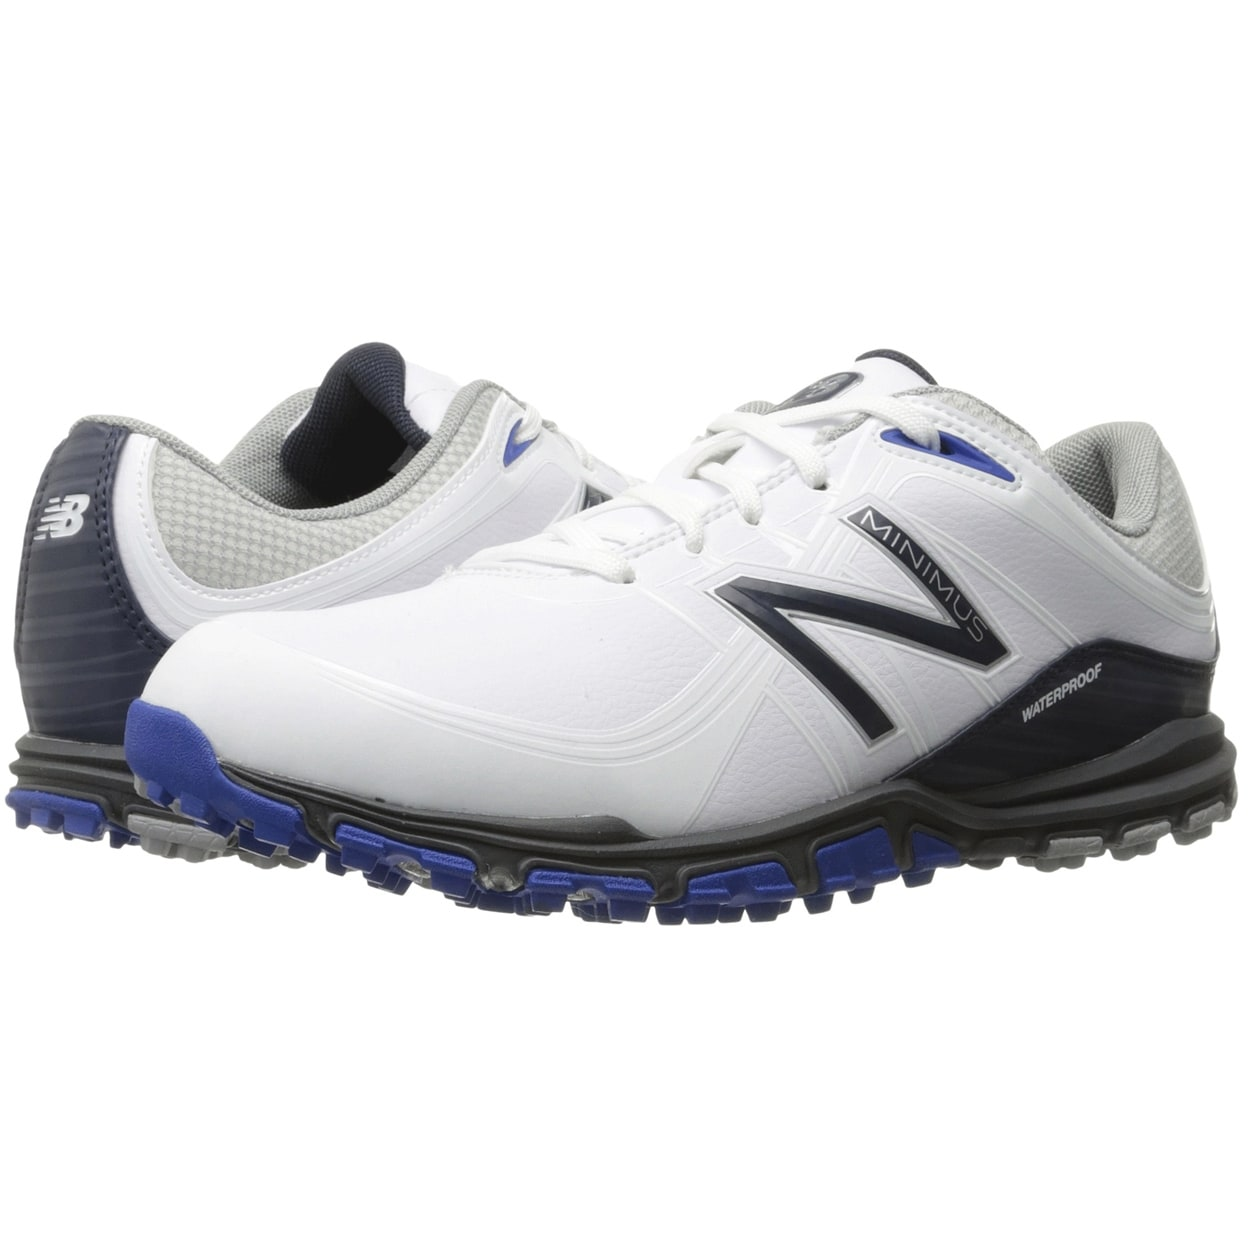 e25b5c340d8a8 Golf Shoes | Find Great Golf Equipment Deals Shopping at Overstock